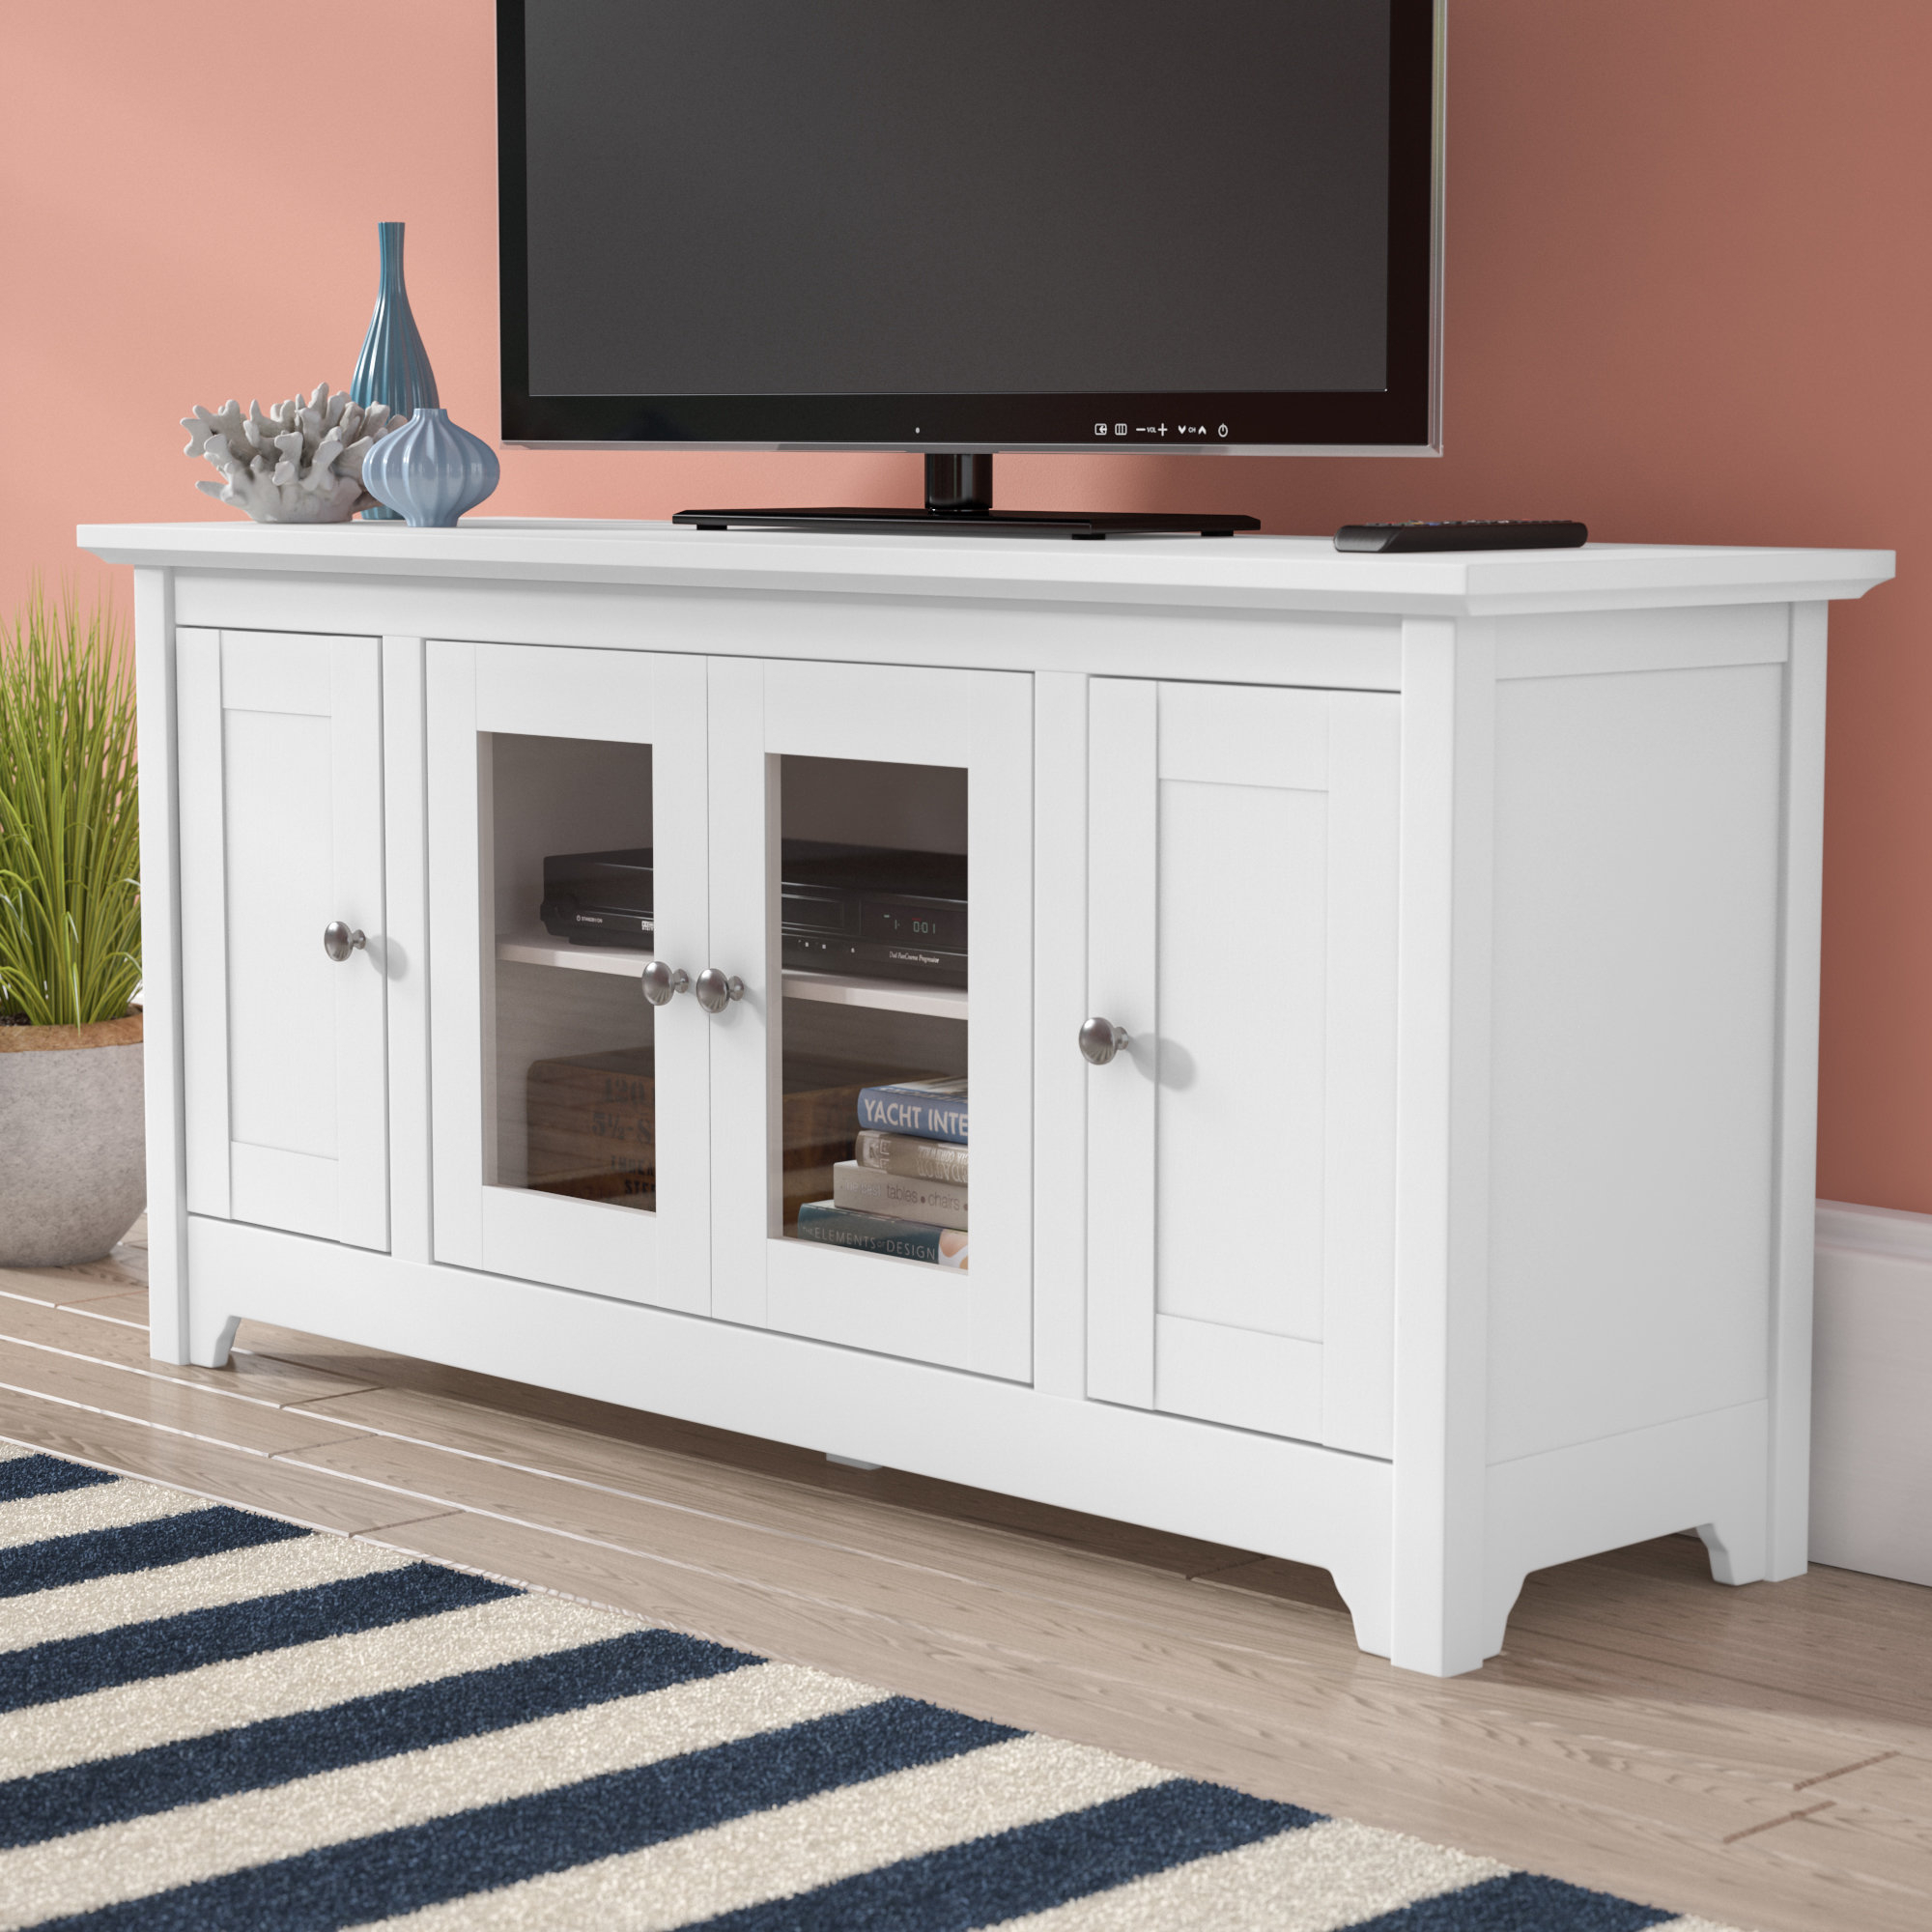 Tv Stands & Entertainment Centers You'll Love | Wayfair intended for Sinclair Grey 54 Inch Tv Stands (Image 28 of 30)